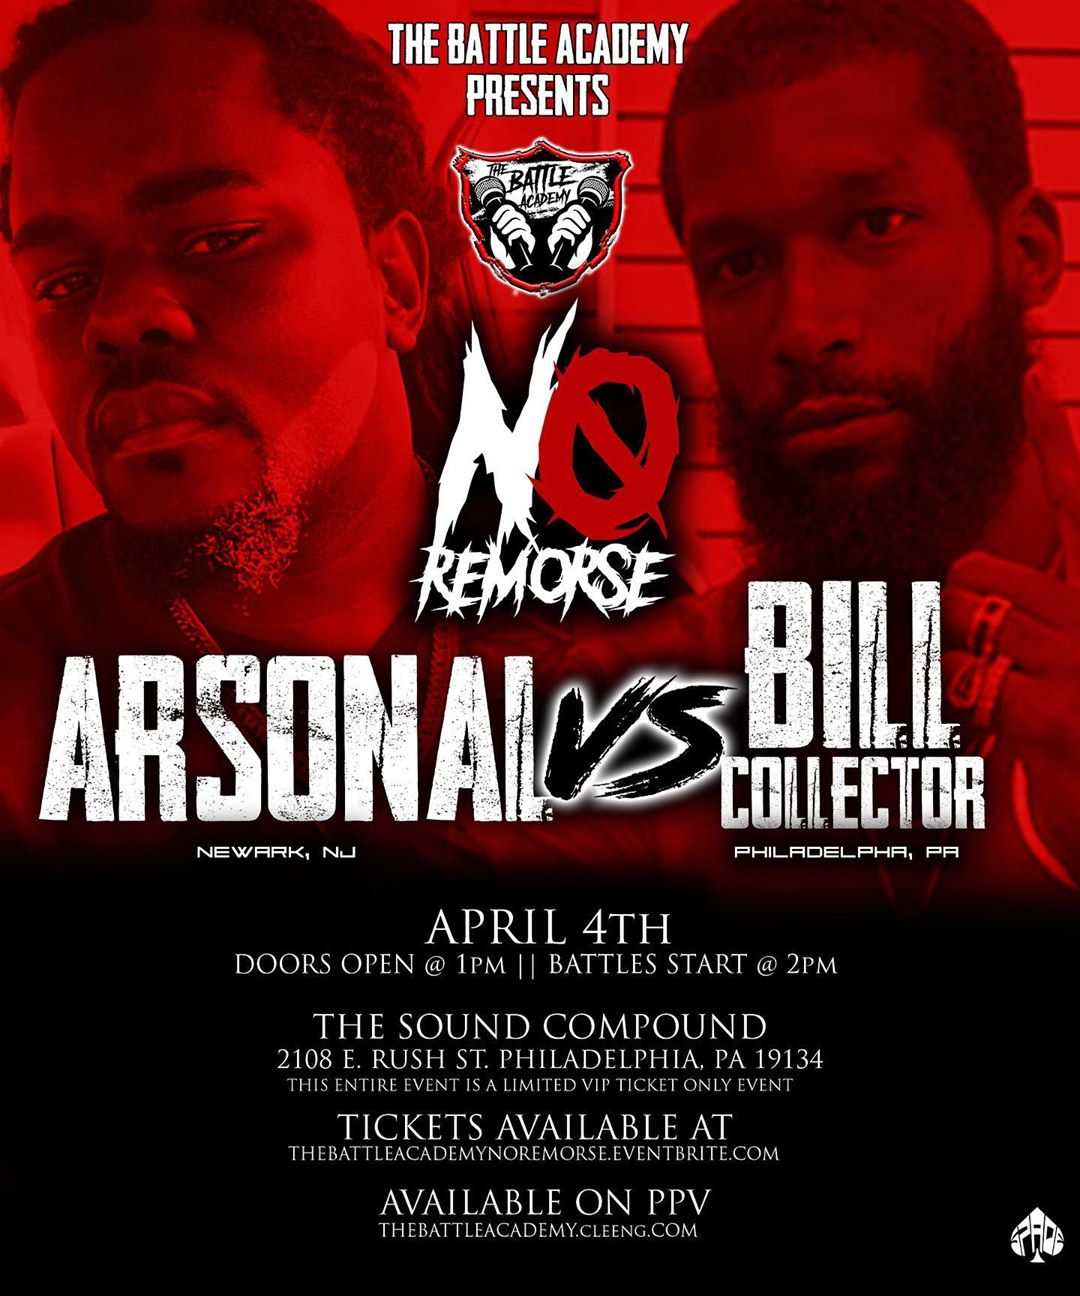 040420 Bill v Arsonal